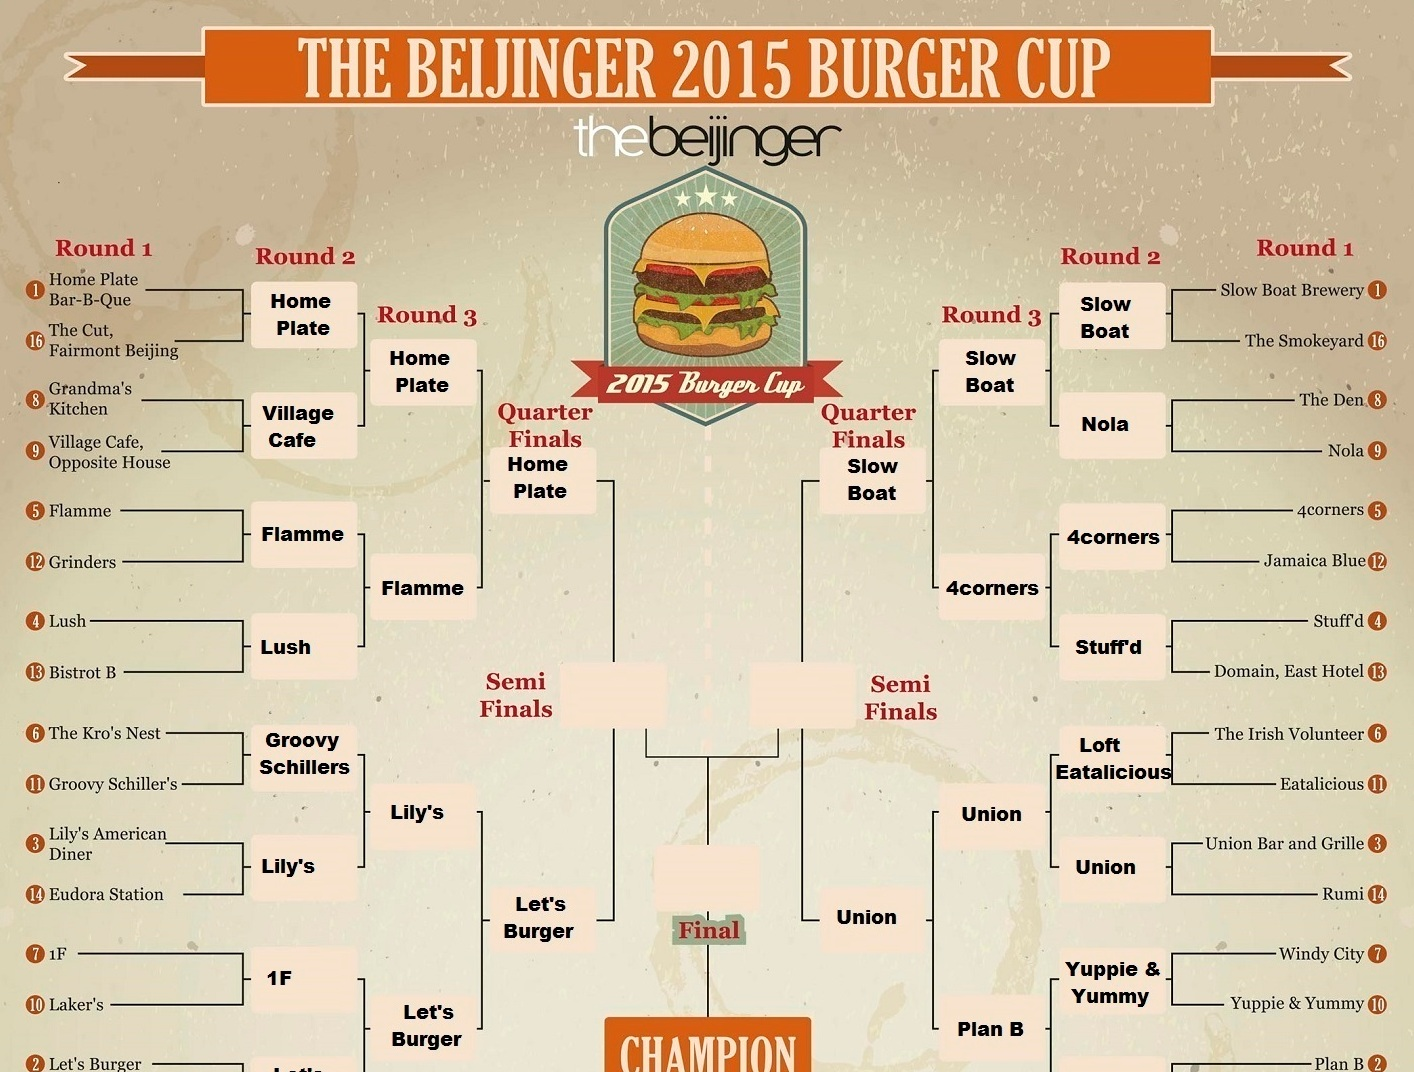 Remember the Alamo! Tim's Texas, Q Mex Go Down Fighting as Burger Cup Field Cut to 8